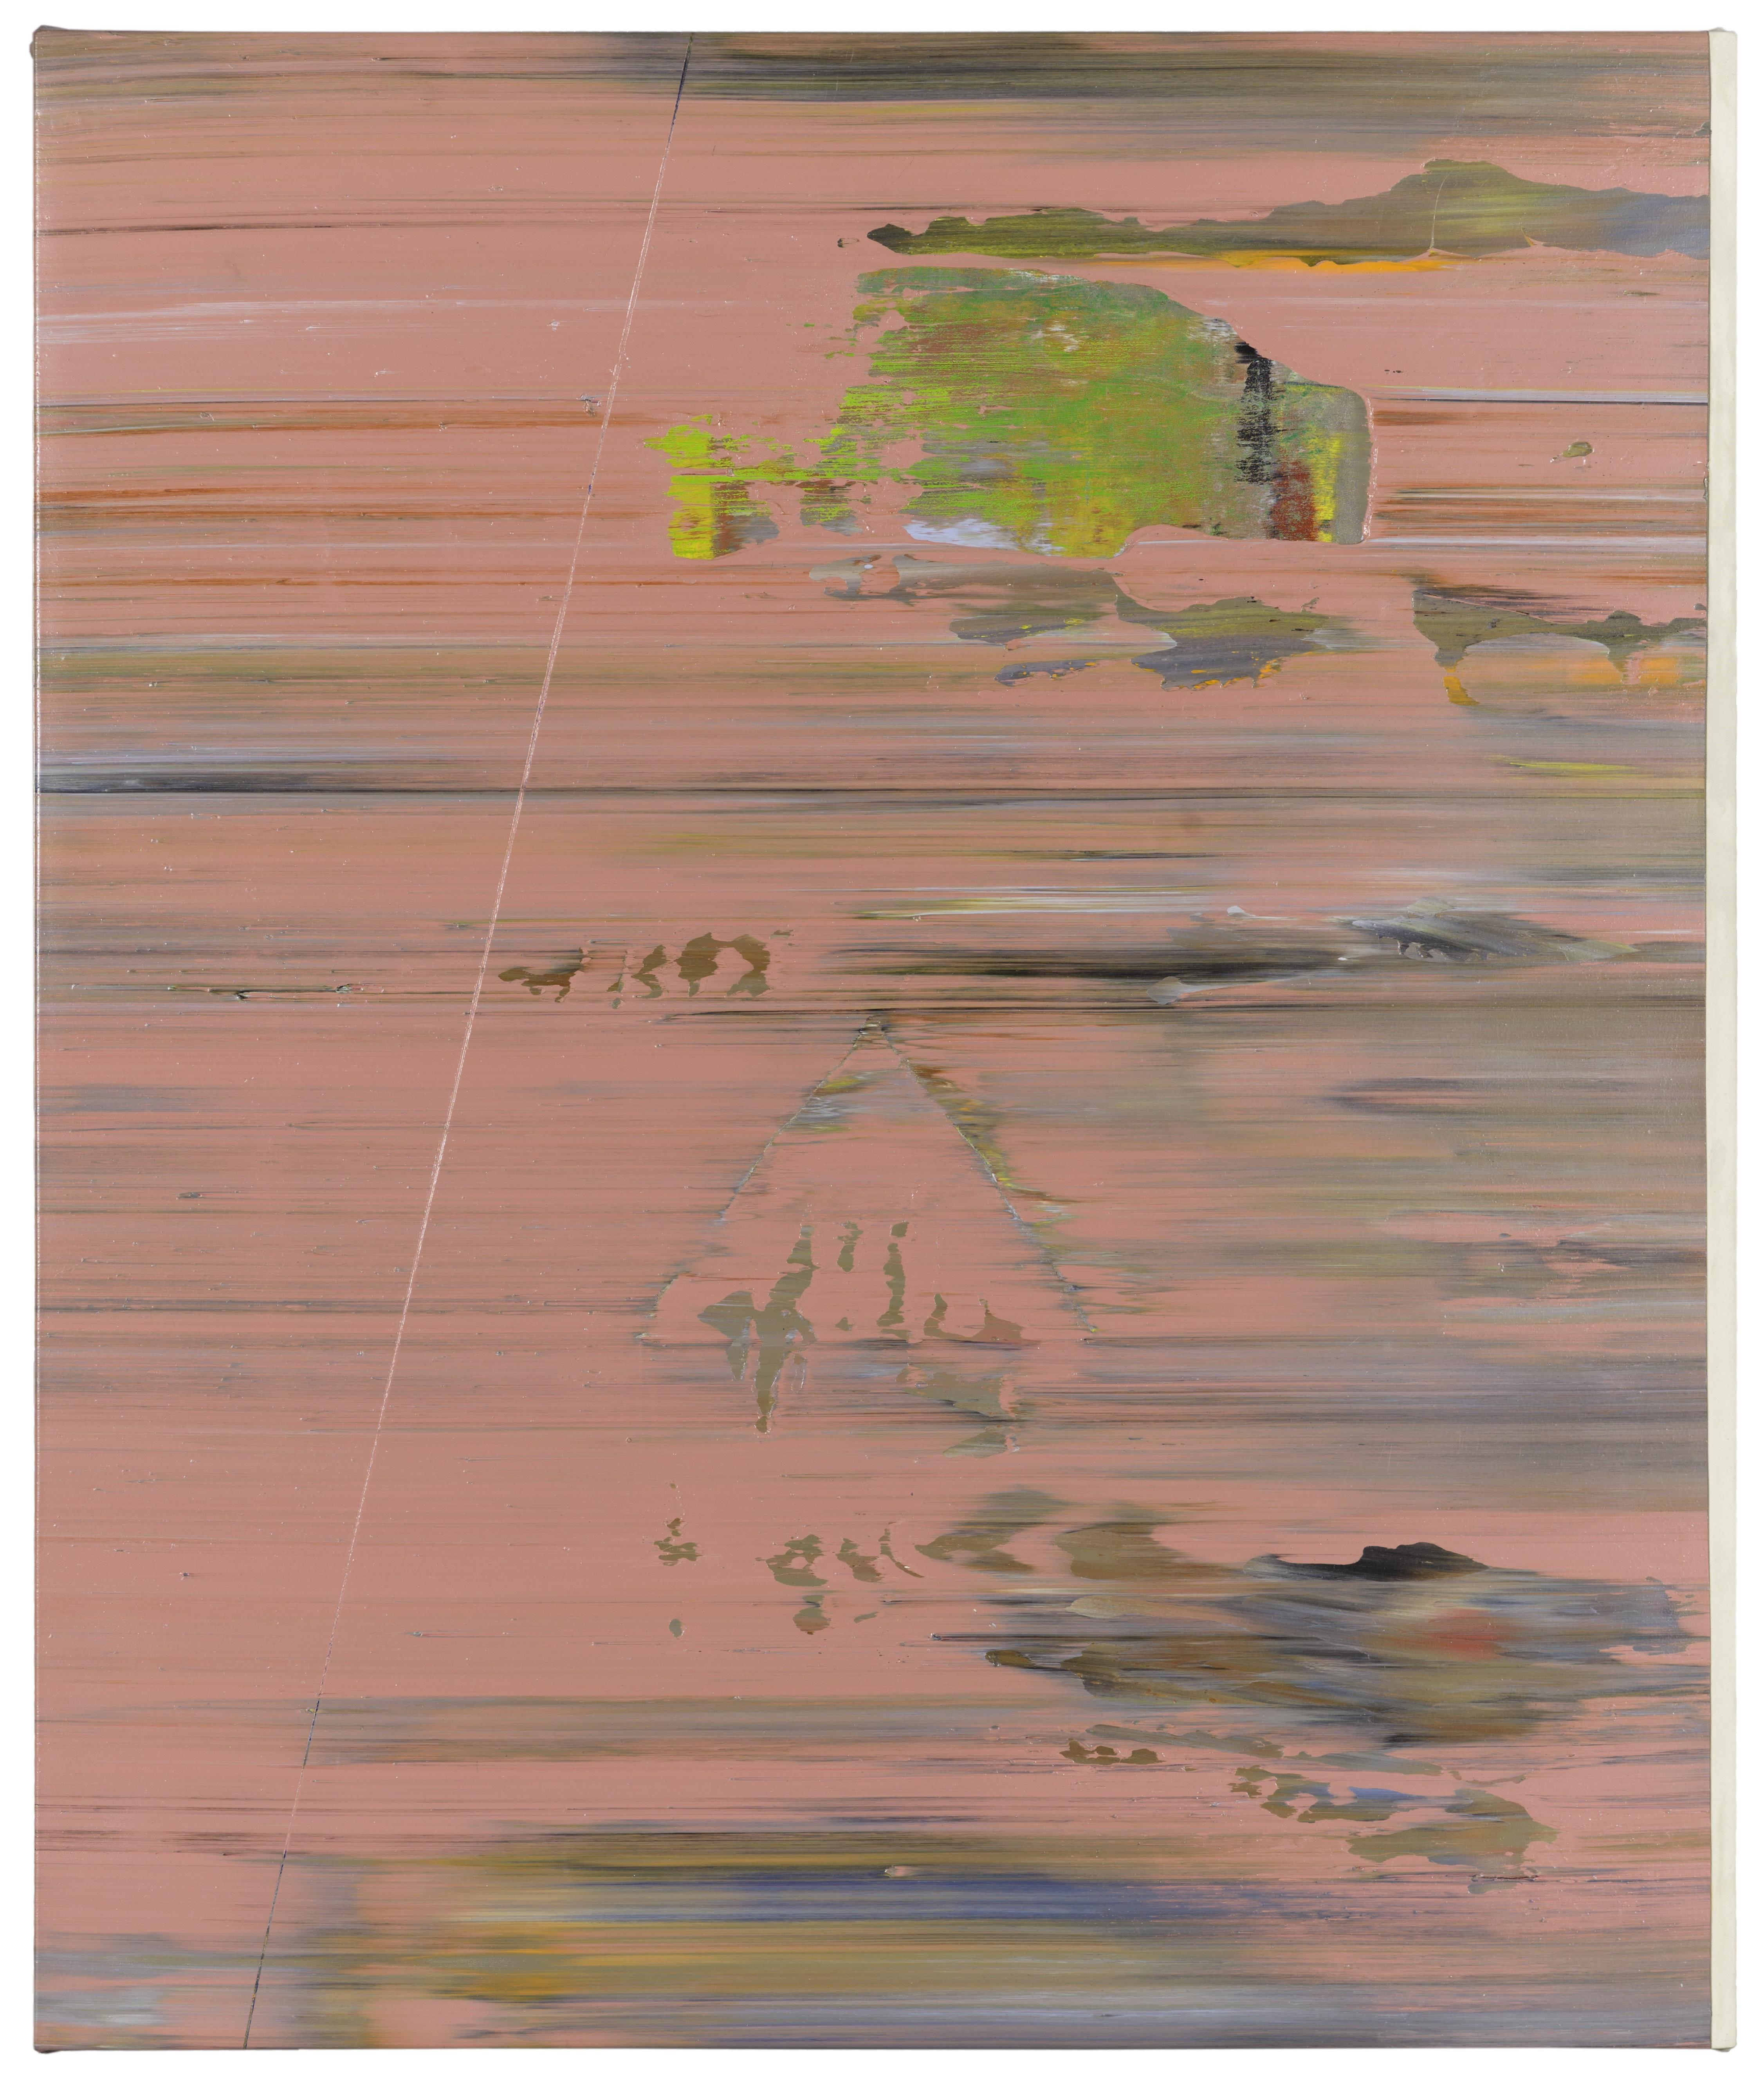 Intermittent, somewhat faded, horizontal streaks of grayish blue, orange, and green are against a pink background with faint hints of shapes coming through.